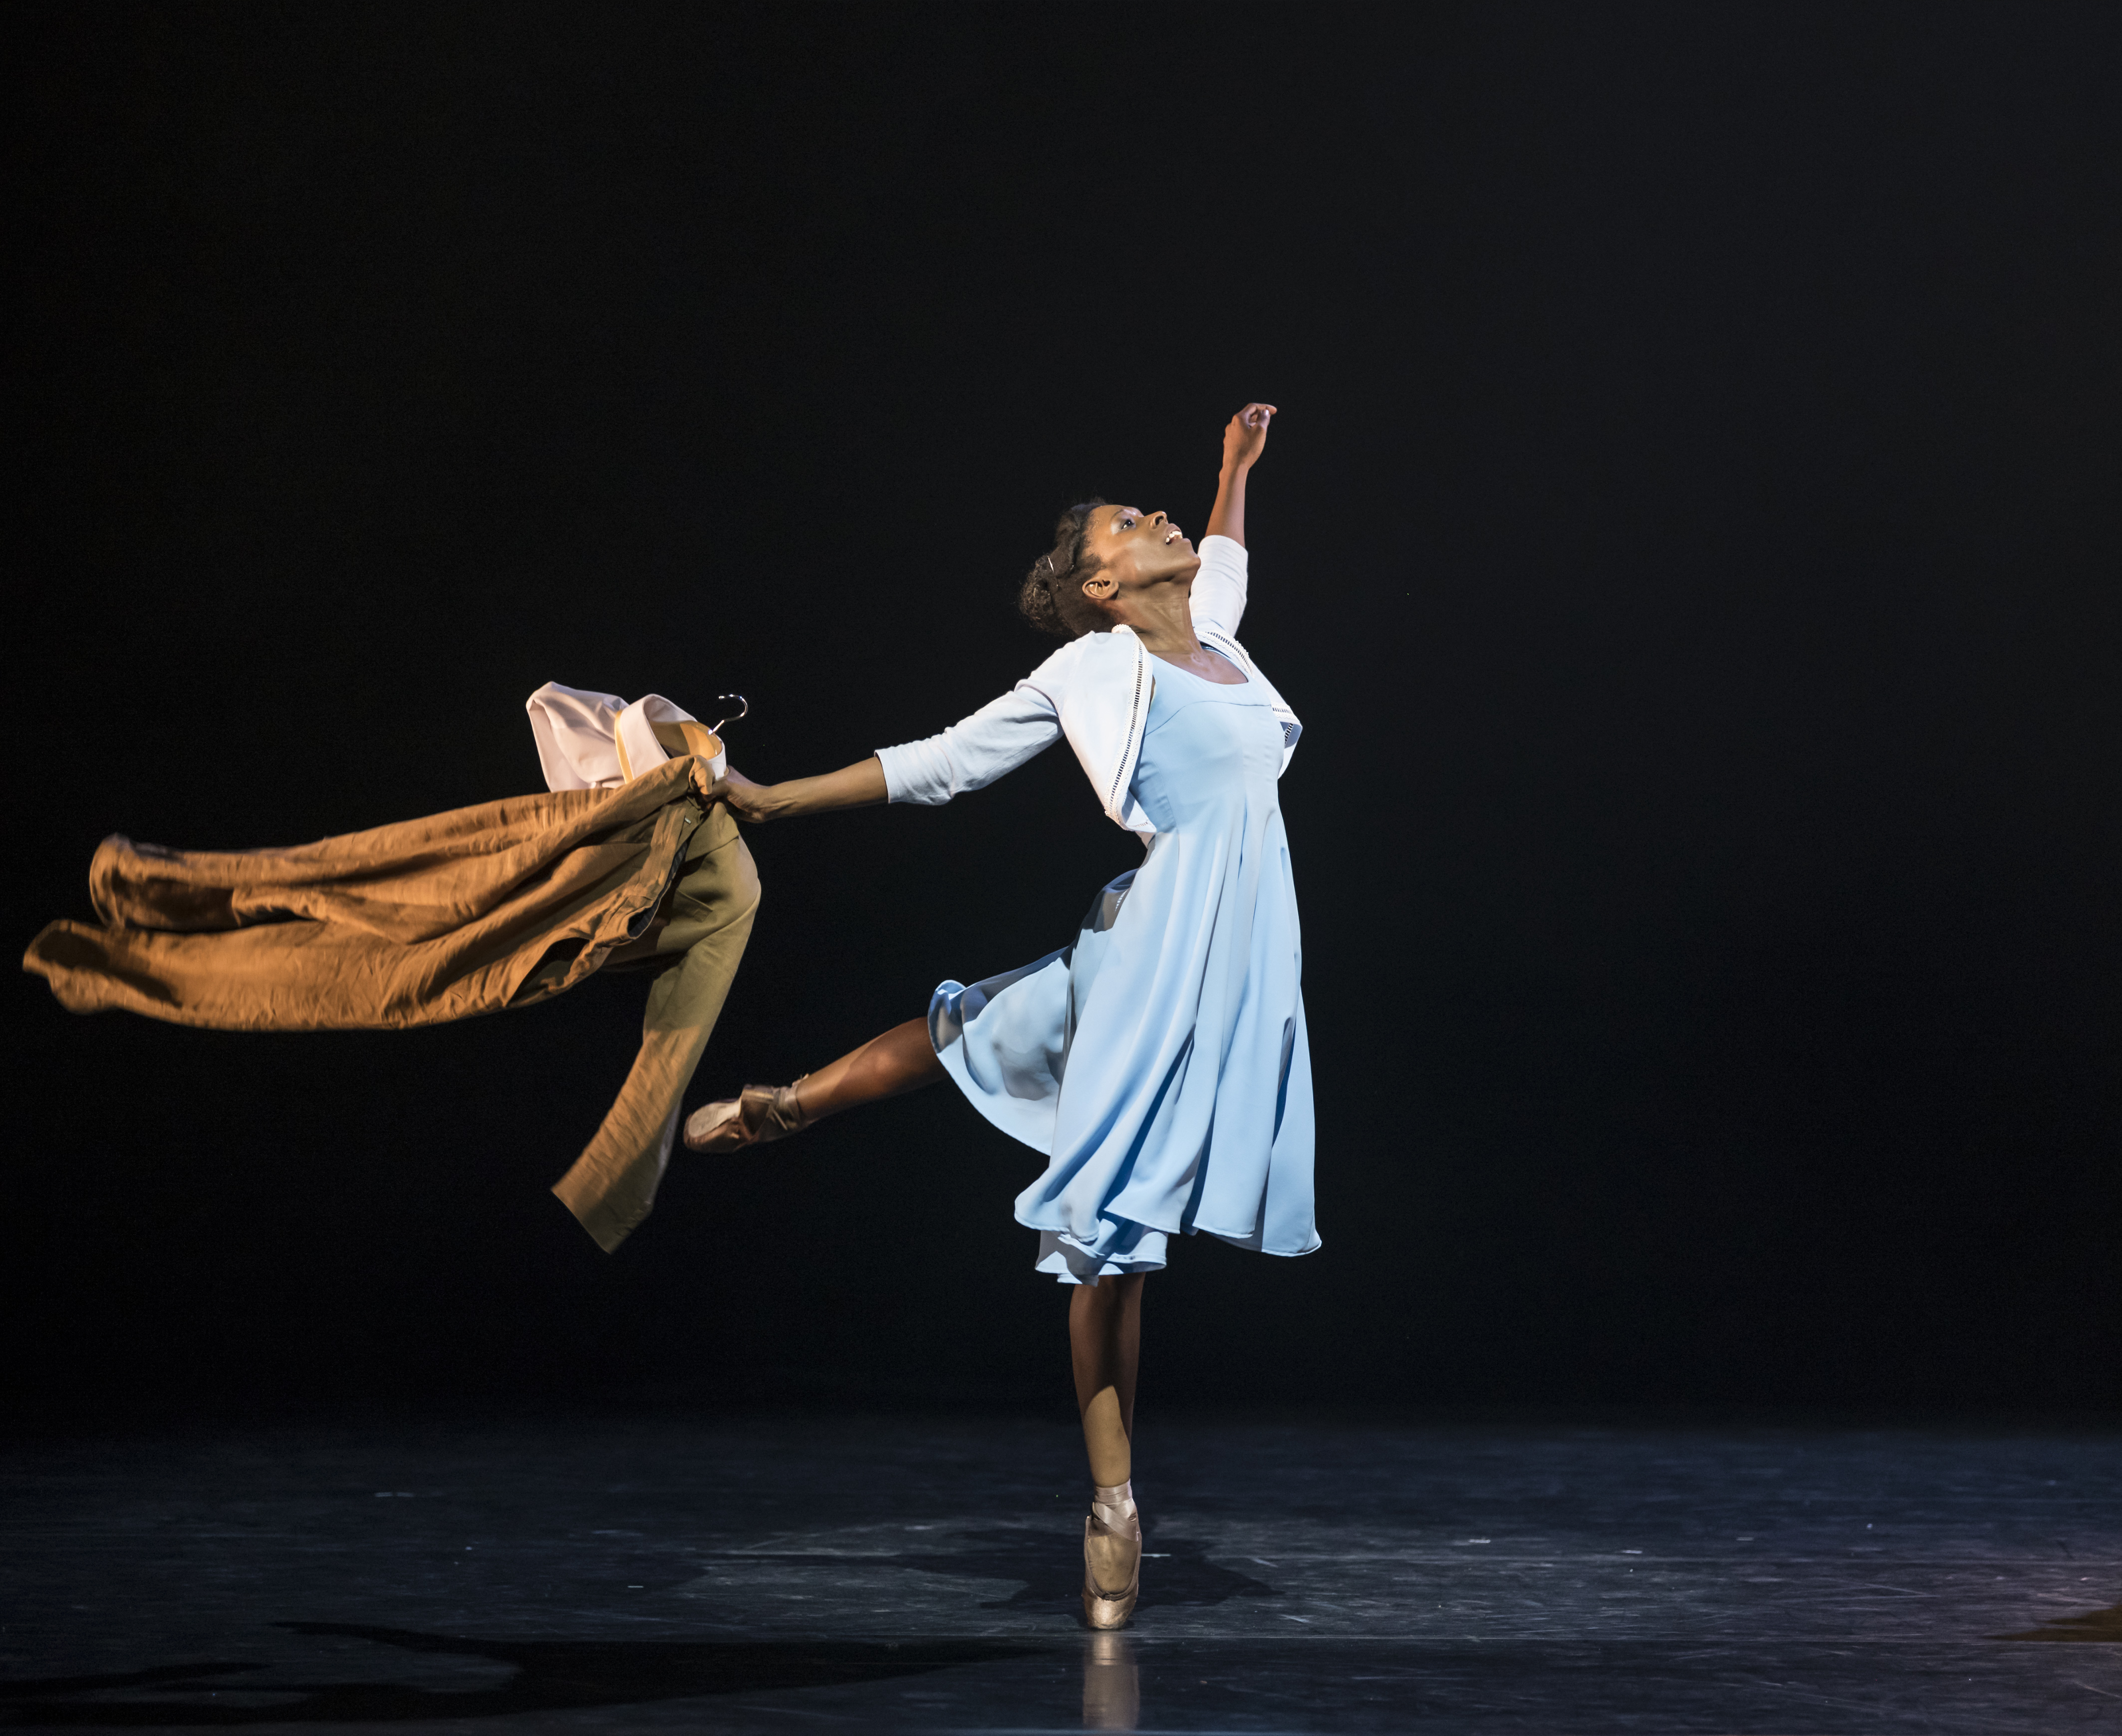 An interview with Senior Artist Cira Robinson – Ballet Black